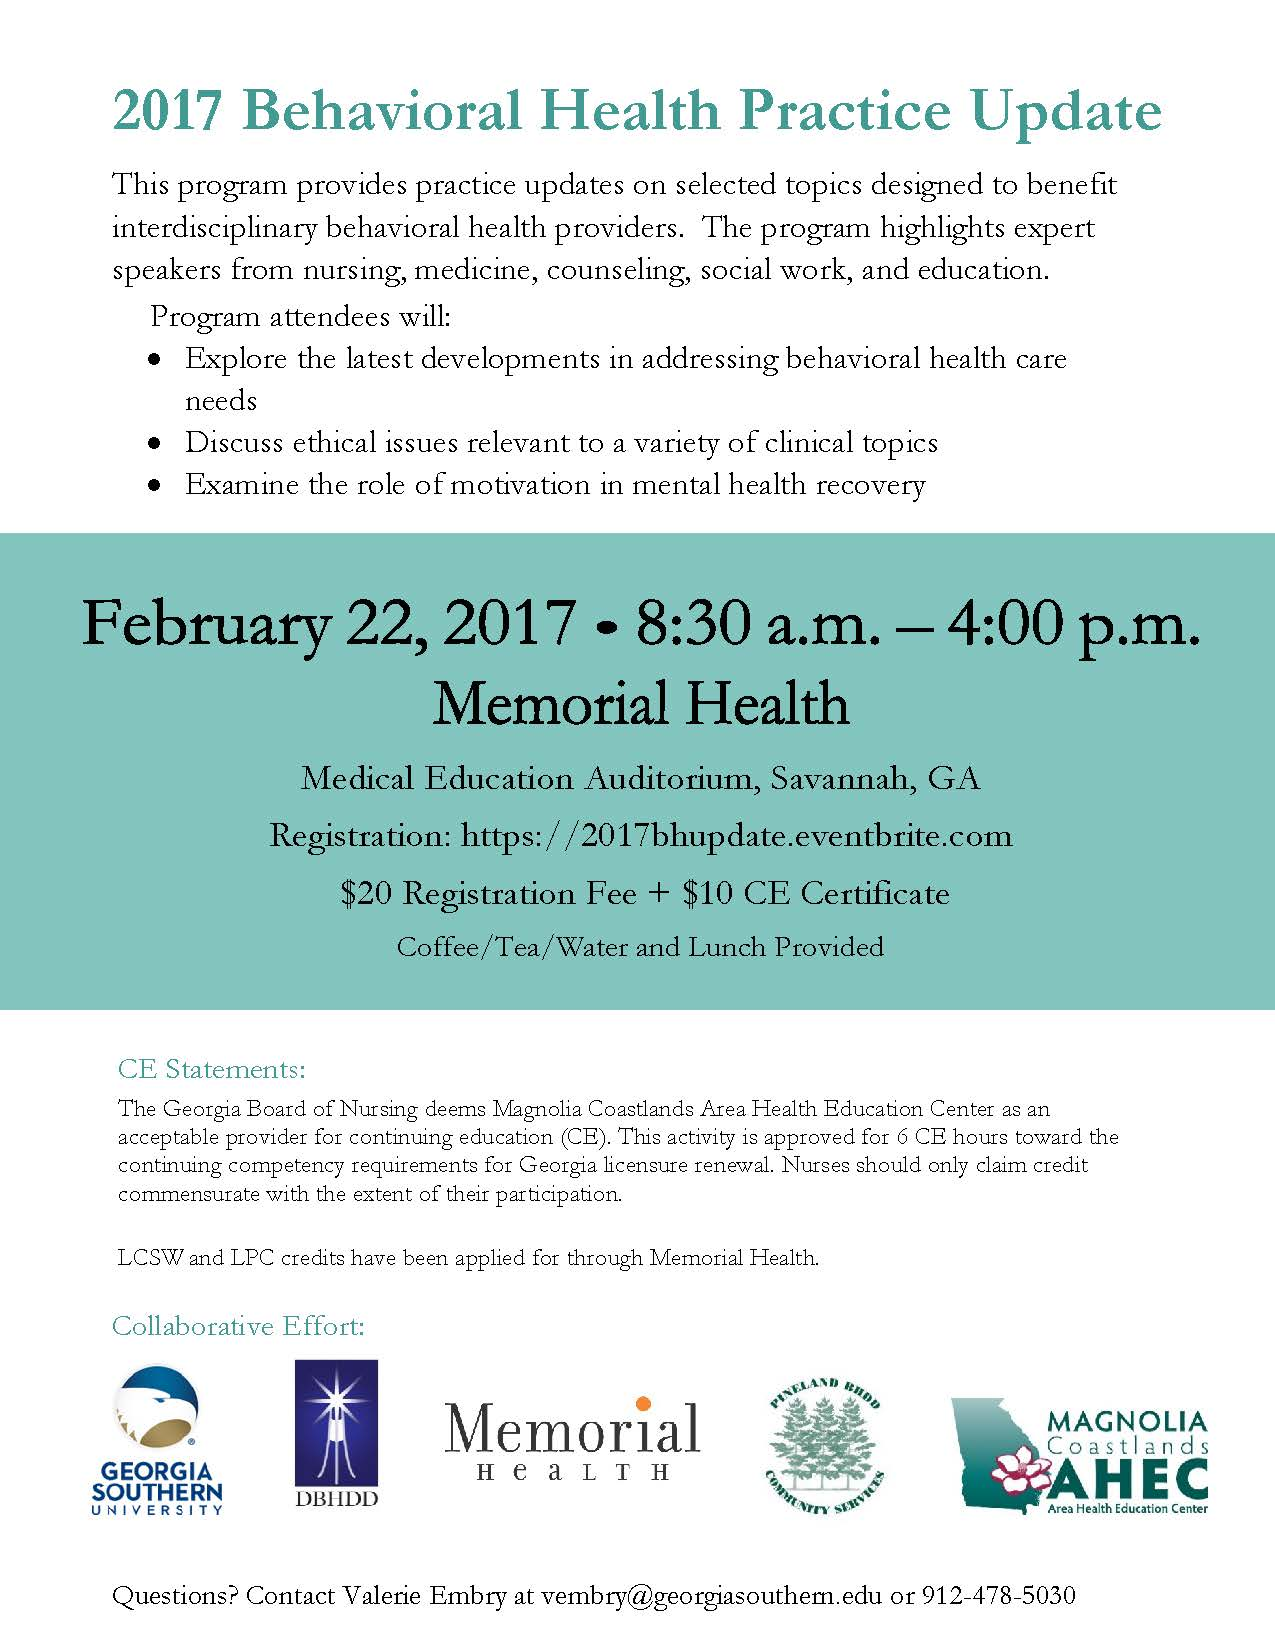 2017 Behavioral Health Practice Update Conference Chatham County